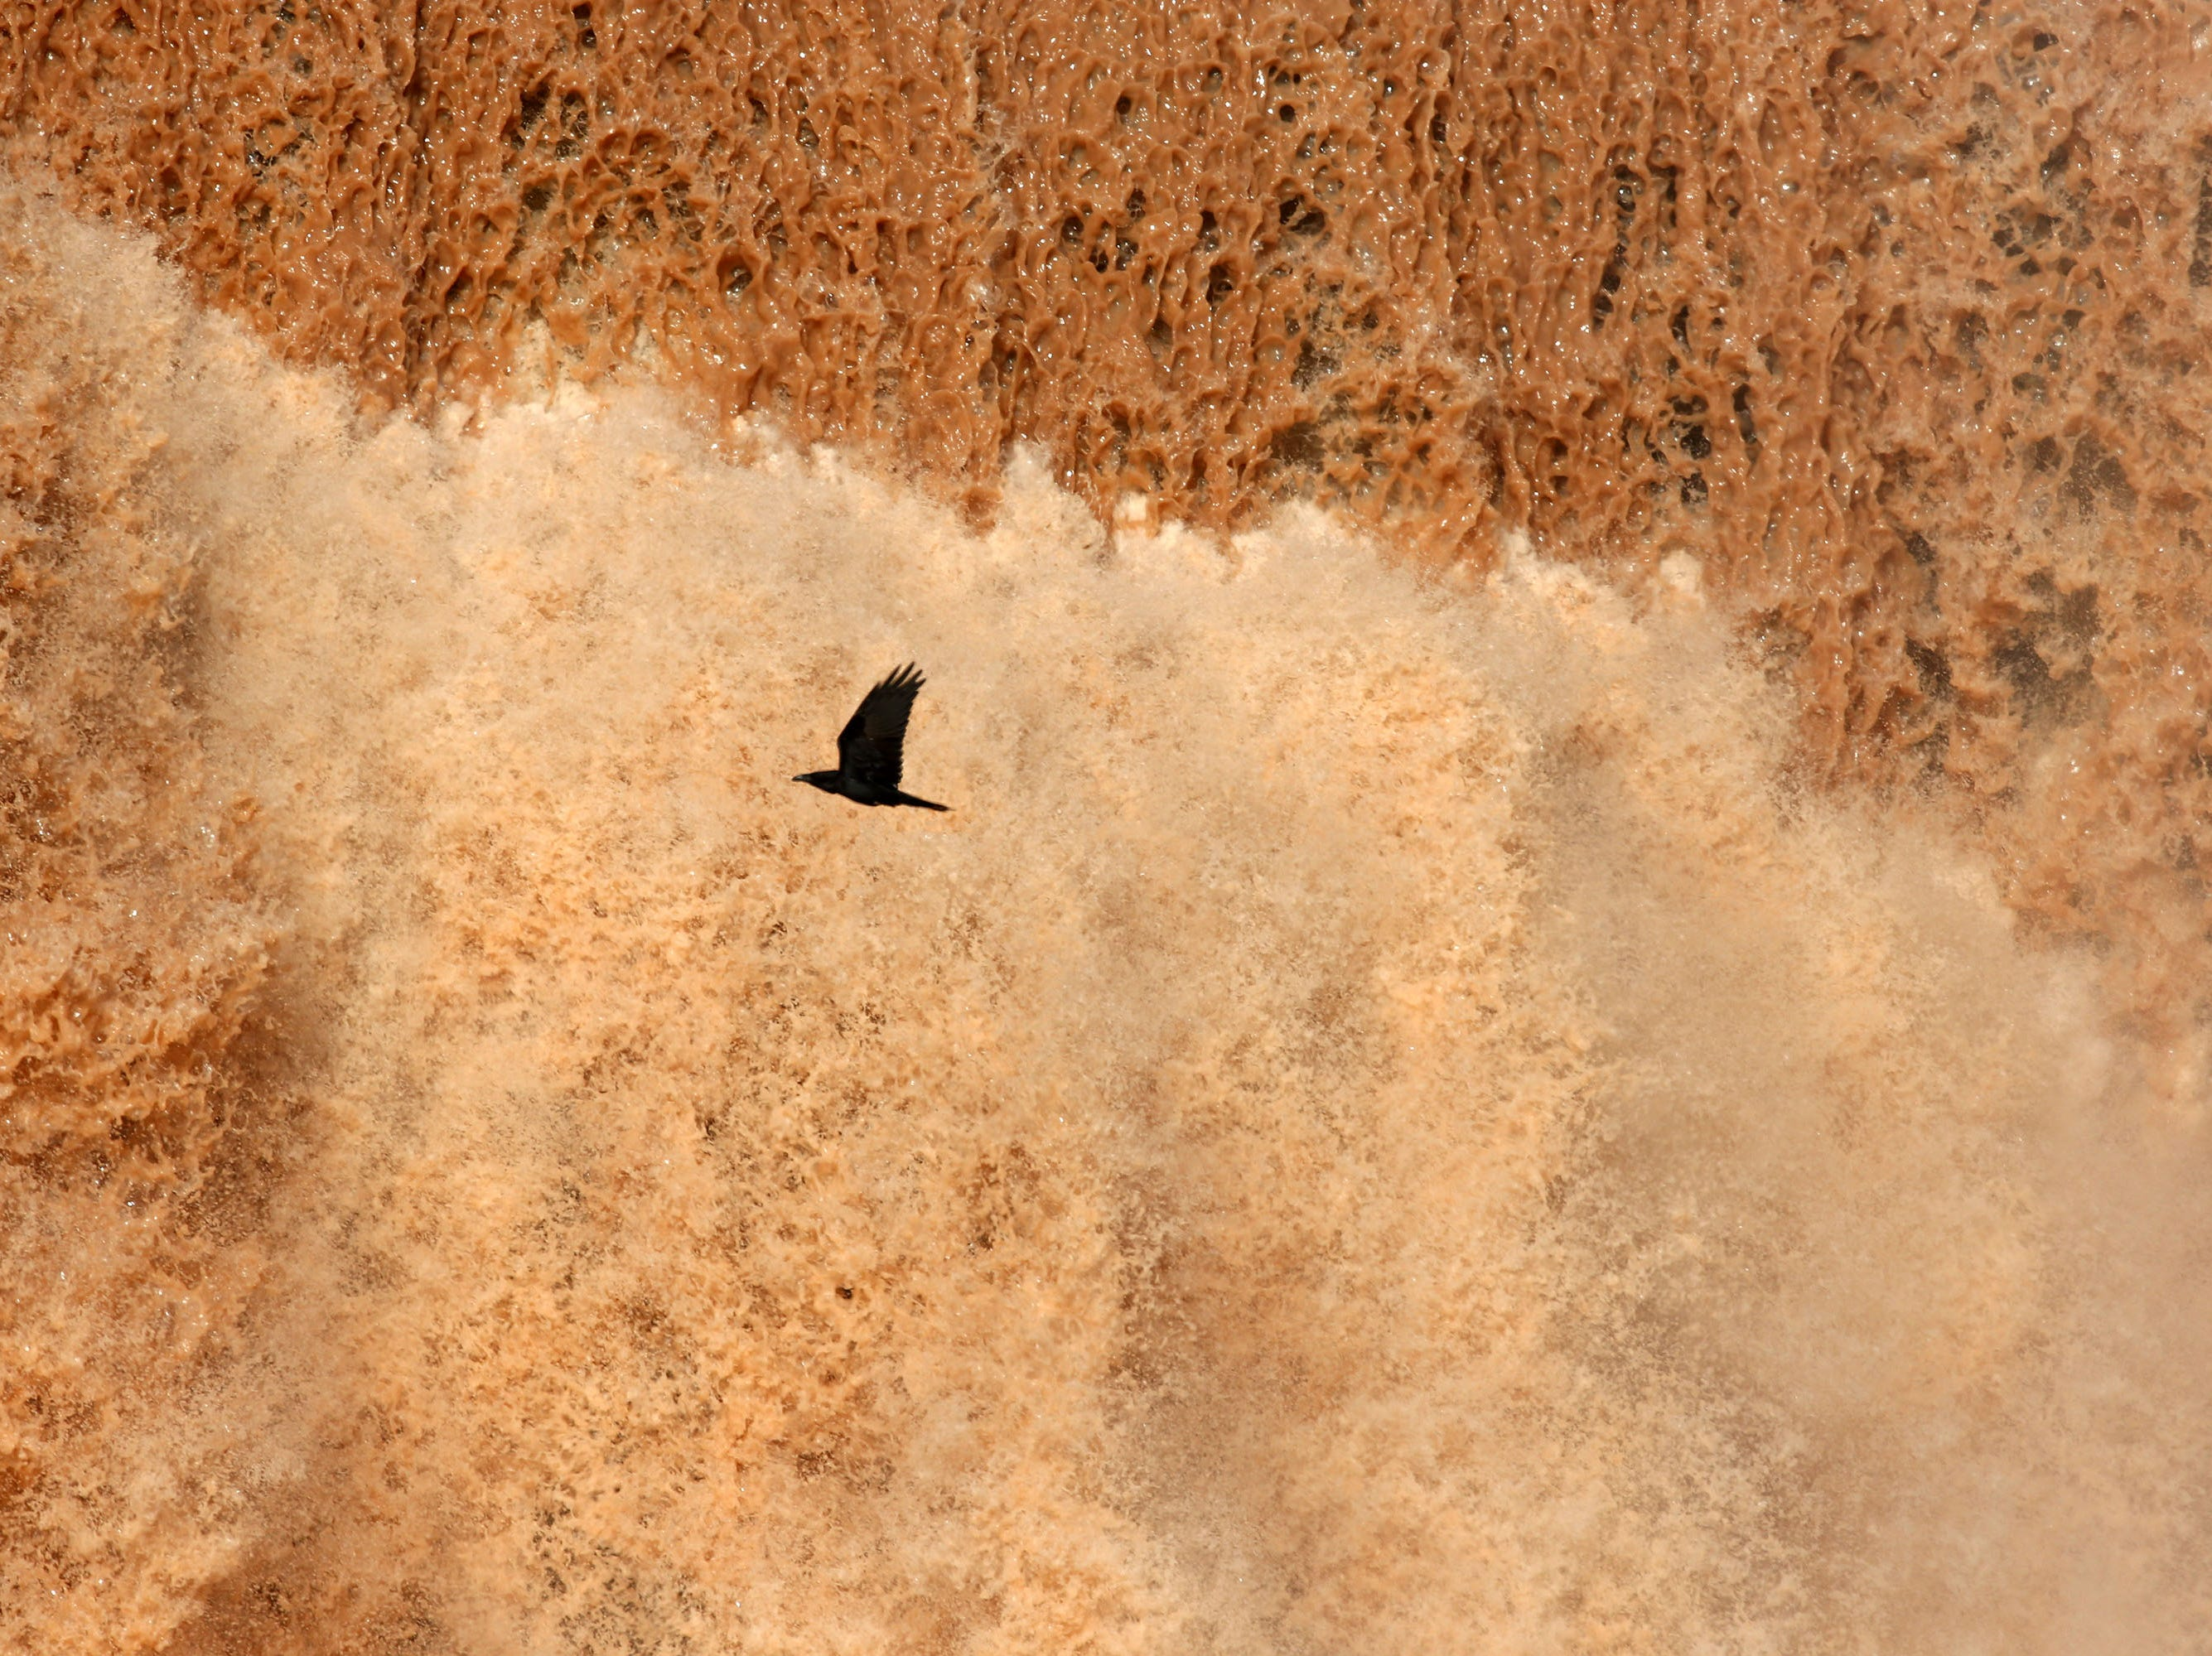 A crow flies past Grand Falls in the Painted Desert on the Navajo Nation on March 28, 2019, near Leupp, Arizona. Melted snow and rain travels down the Little Colorado River to the 185-foot fall a.k.a. Chocolate Falls. Grand Falls is 18 feet taller than Niagara Falls.